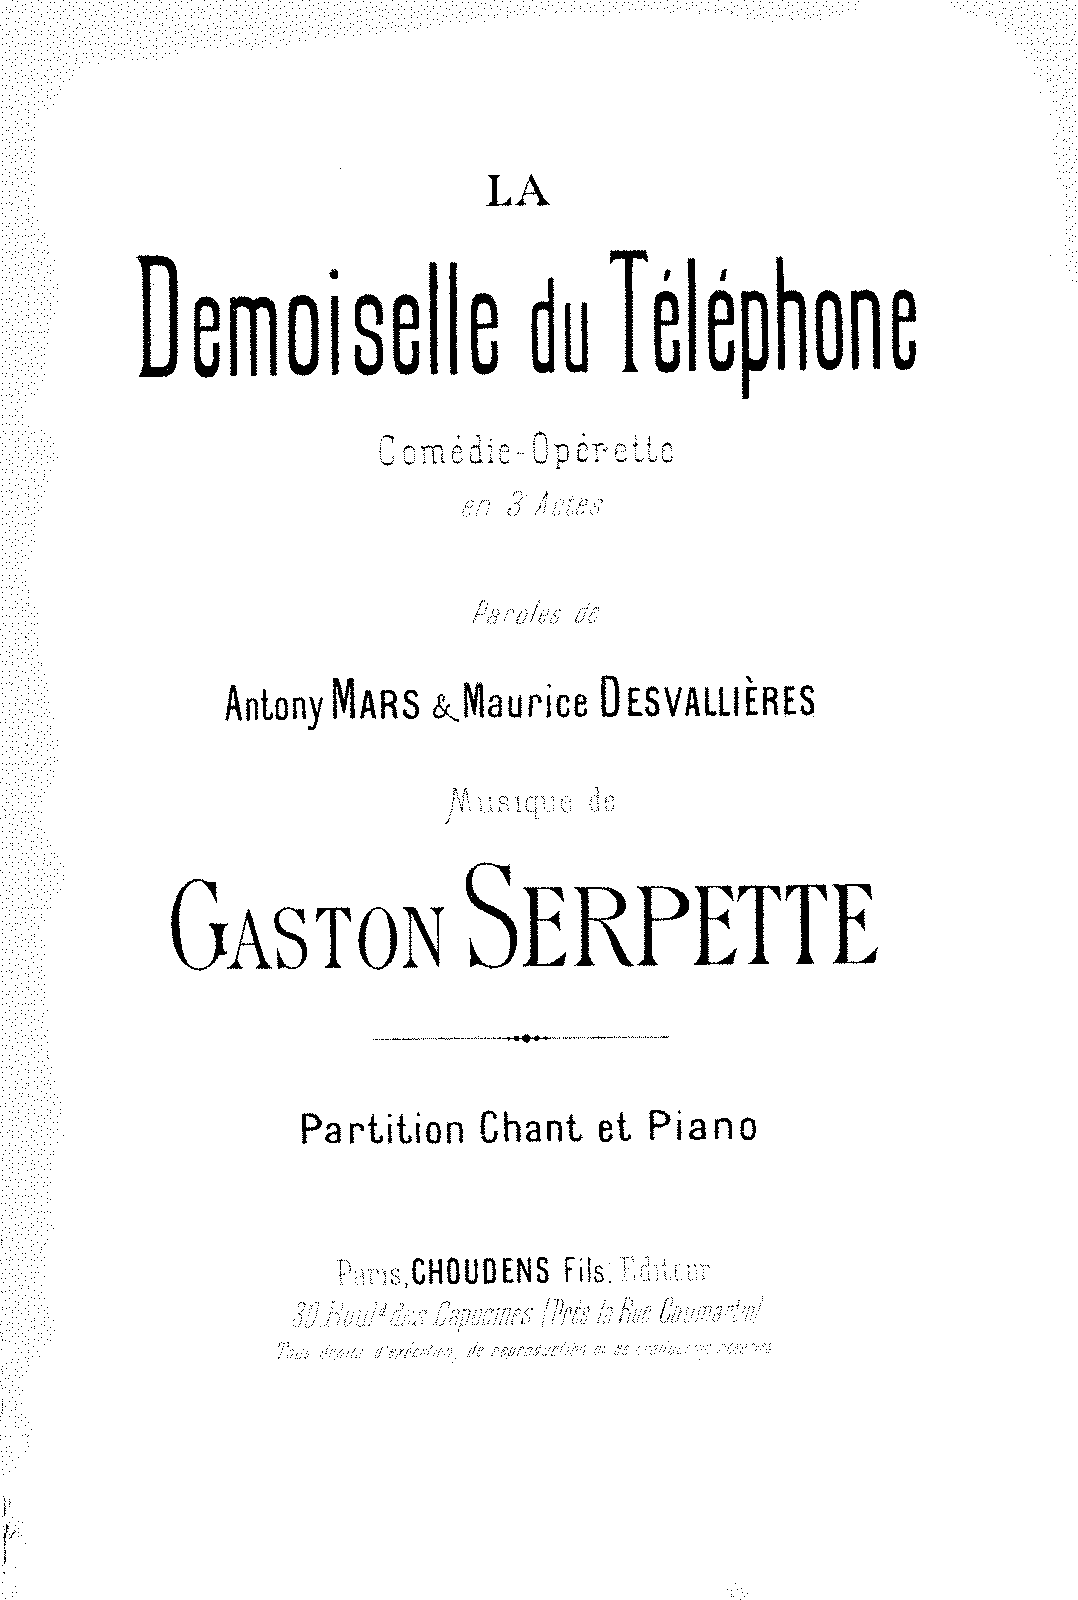 PMLP213519-Serpette - La demoiselle du telephone VS.pdf